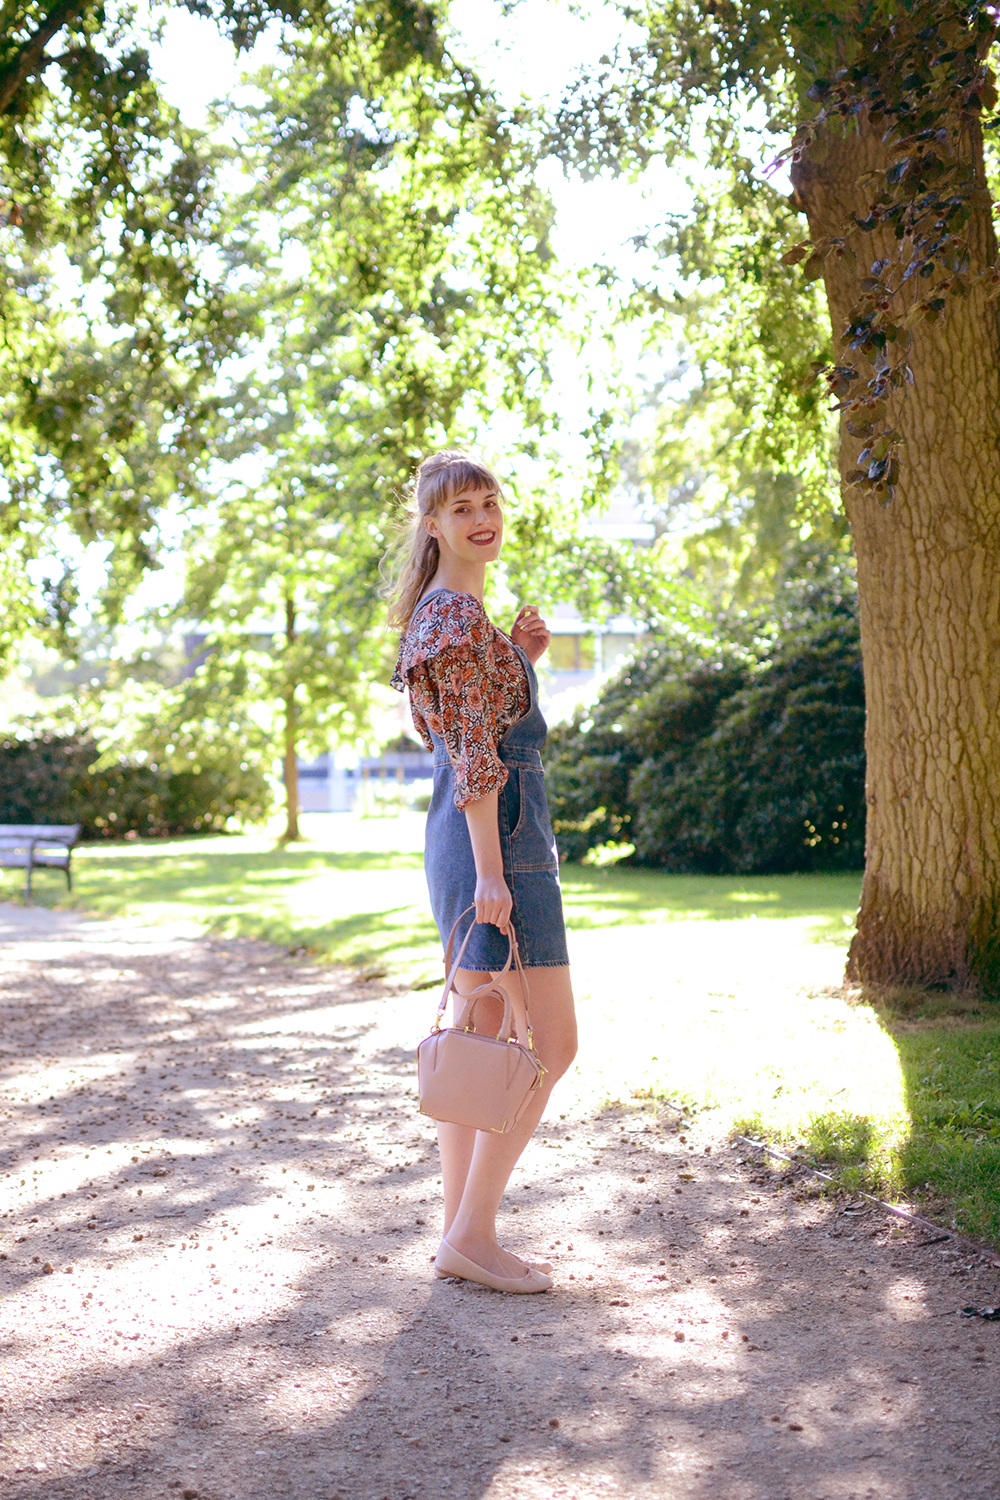 Retromantisch retro romantic fashion blog floral top Glamorous Monki pinafore jurk dress dungaree H&M pink flats ballerina Alexander Wang bag Emile blush